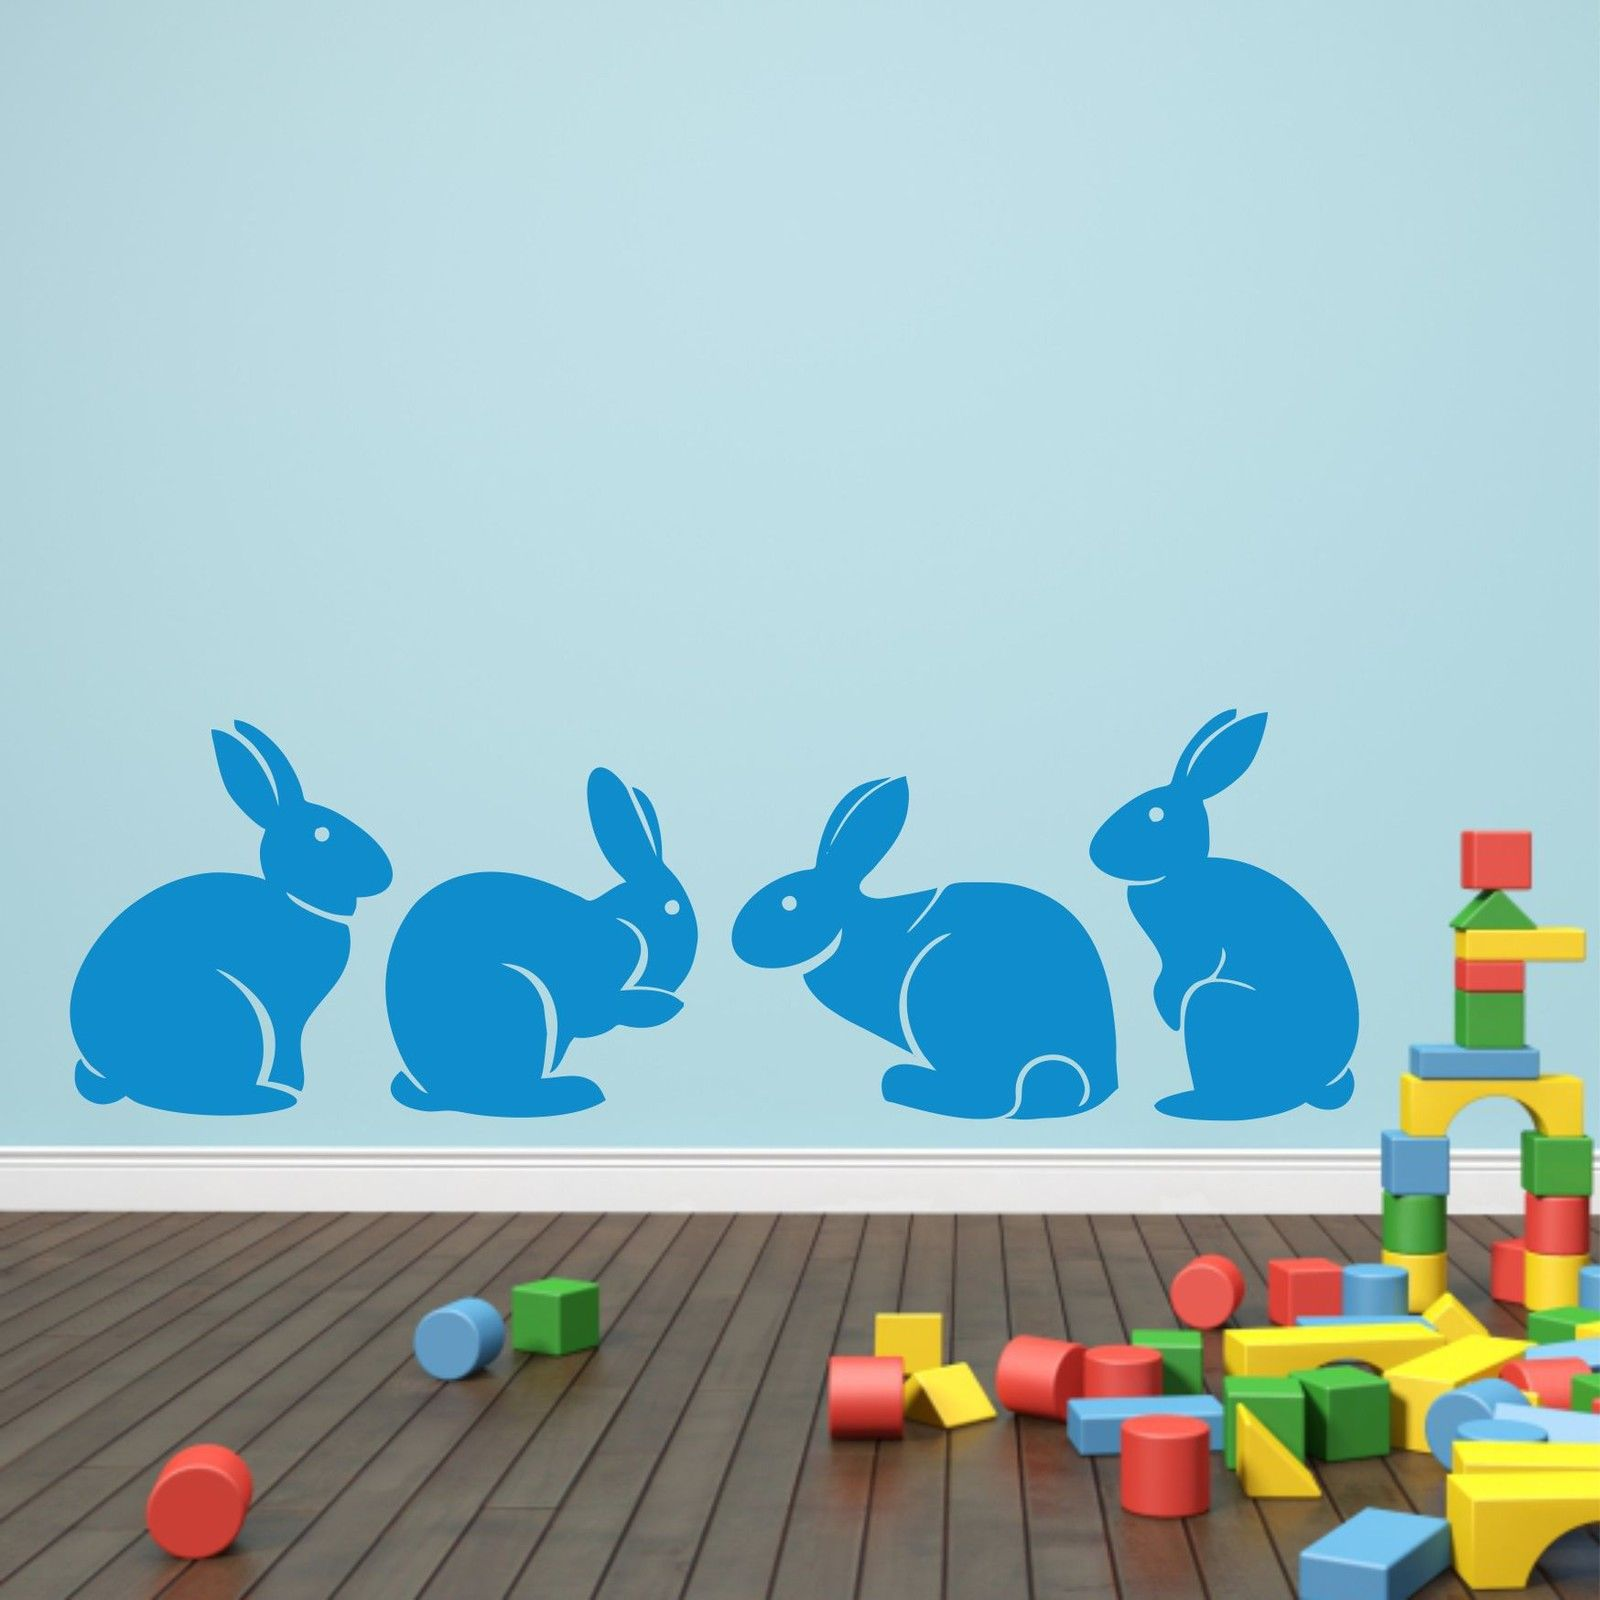 A007 Cute Bunny Rabbits Wall Sticker Baby Nursery Rabbitits Wall - Տնային դեկոր - Լուսանկար 5